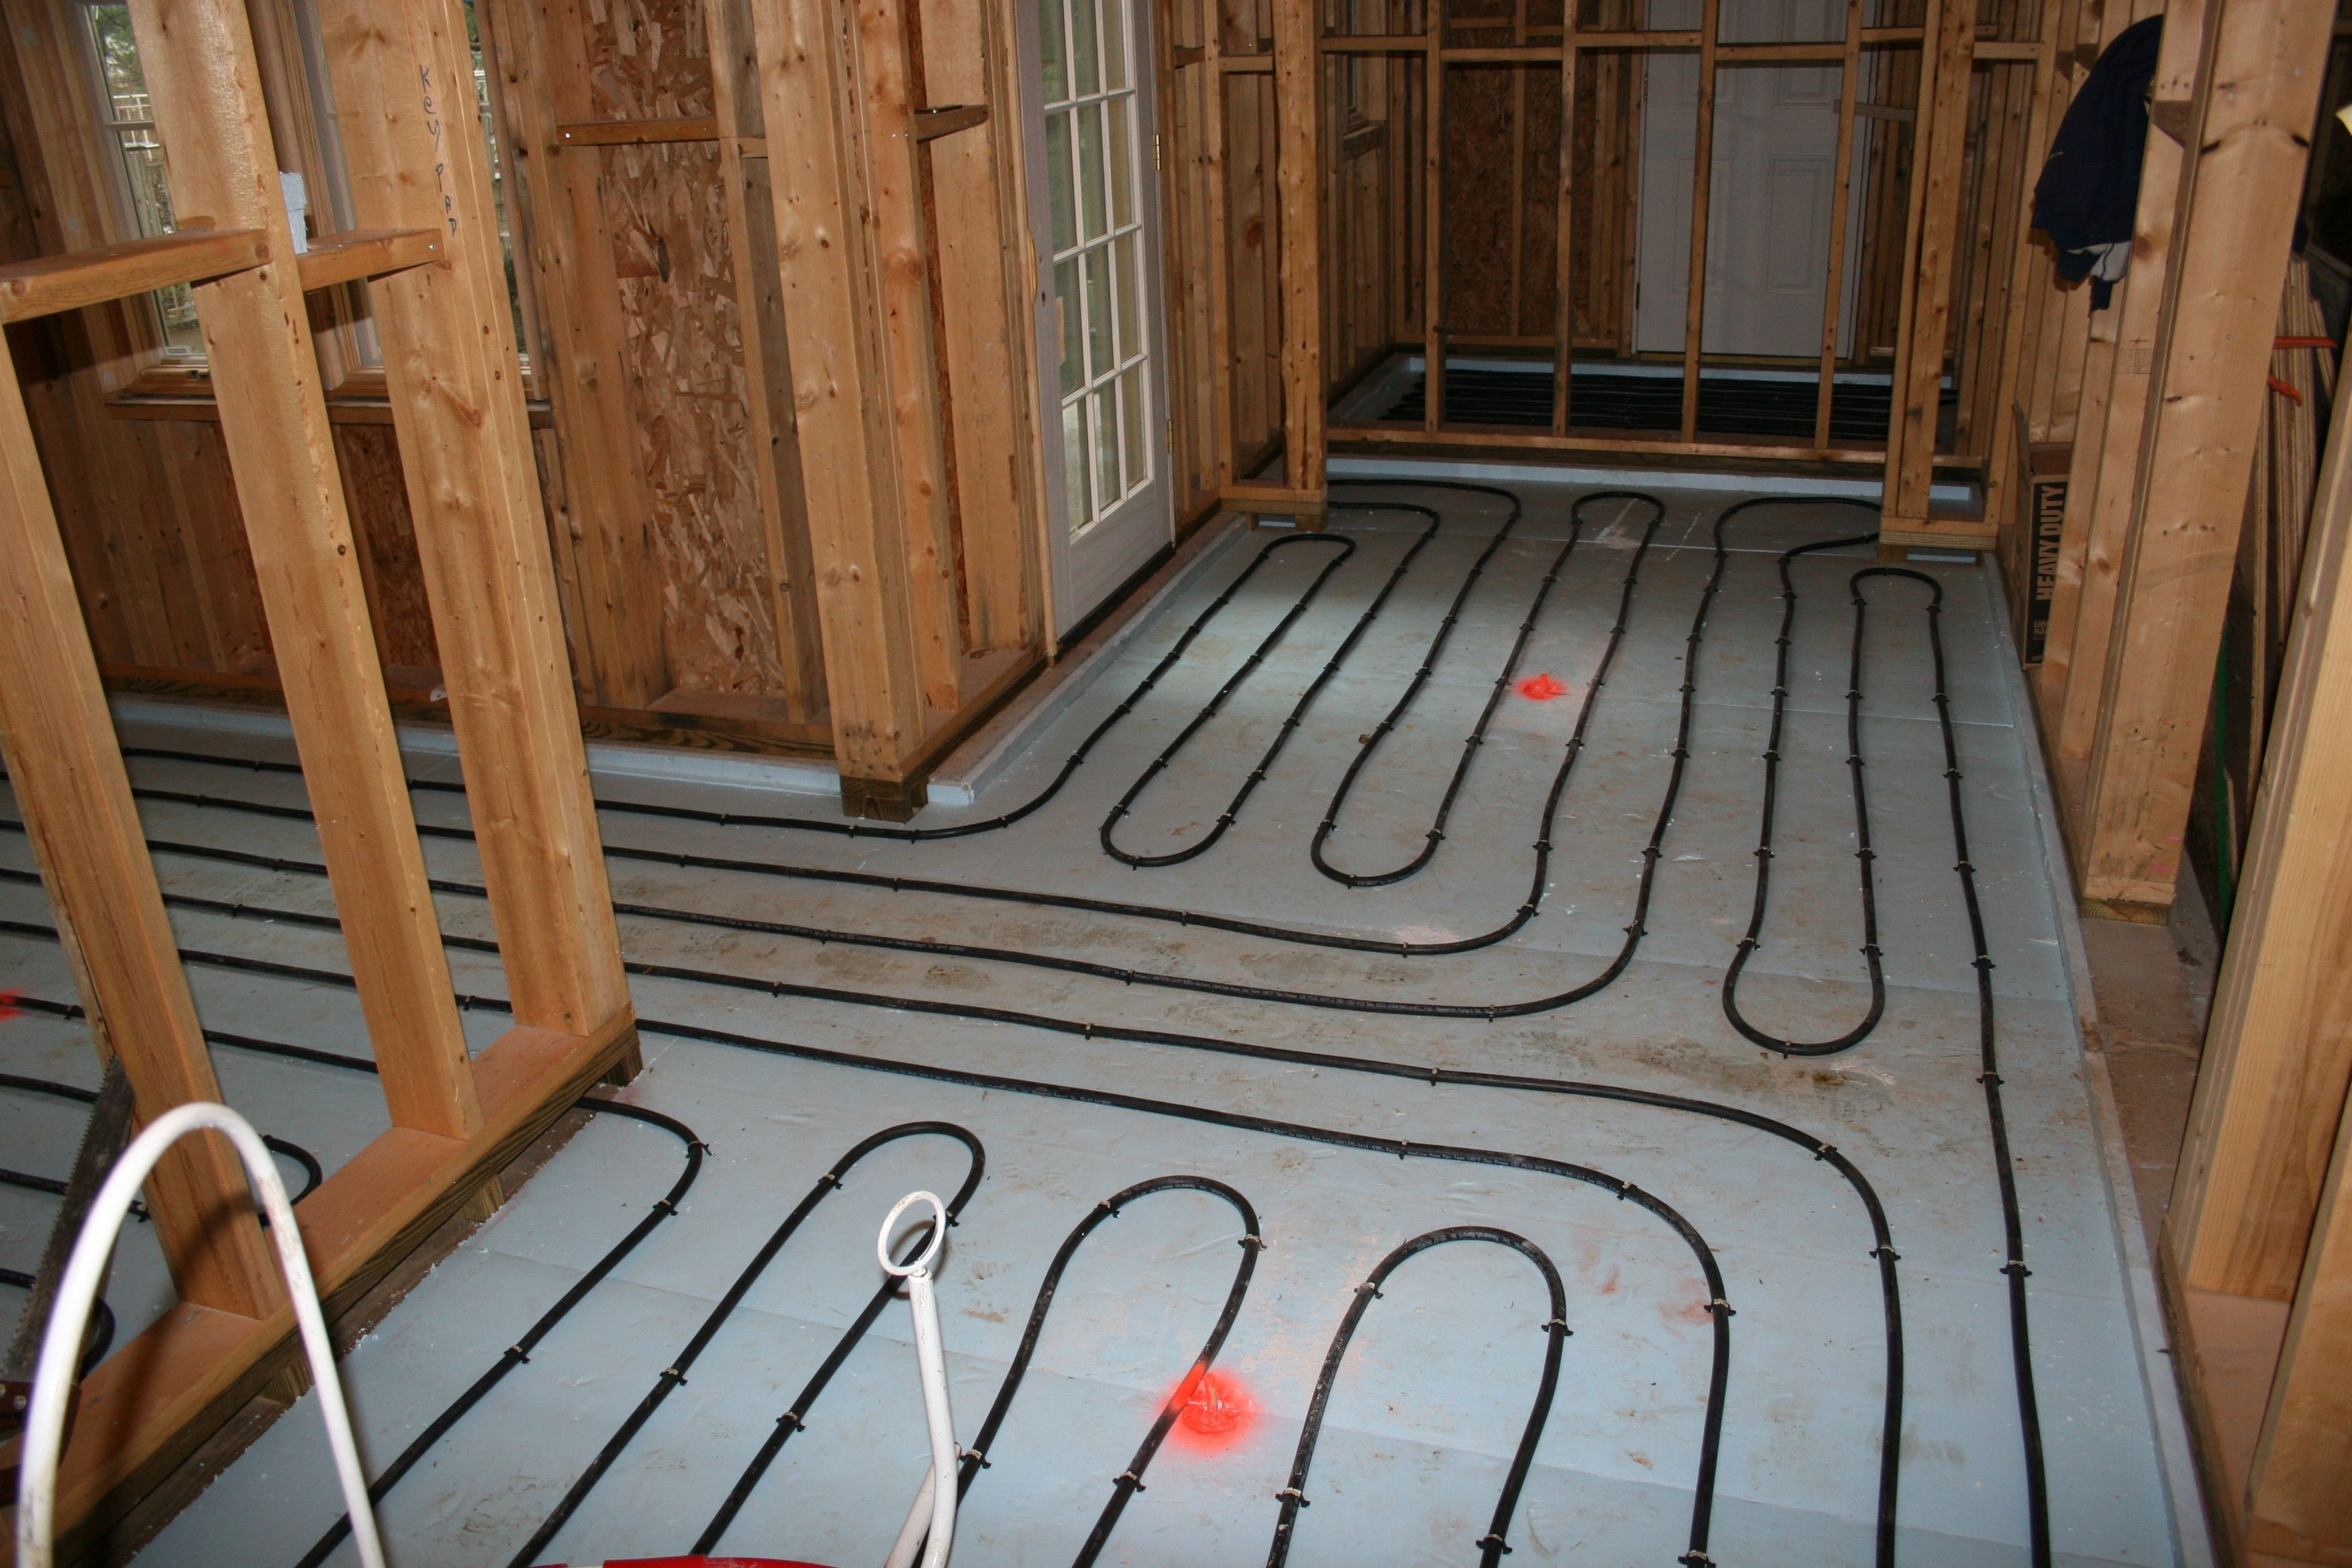 Heated Tile Floor On Concrete Slab